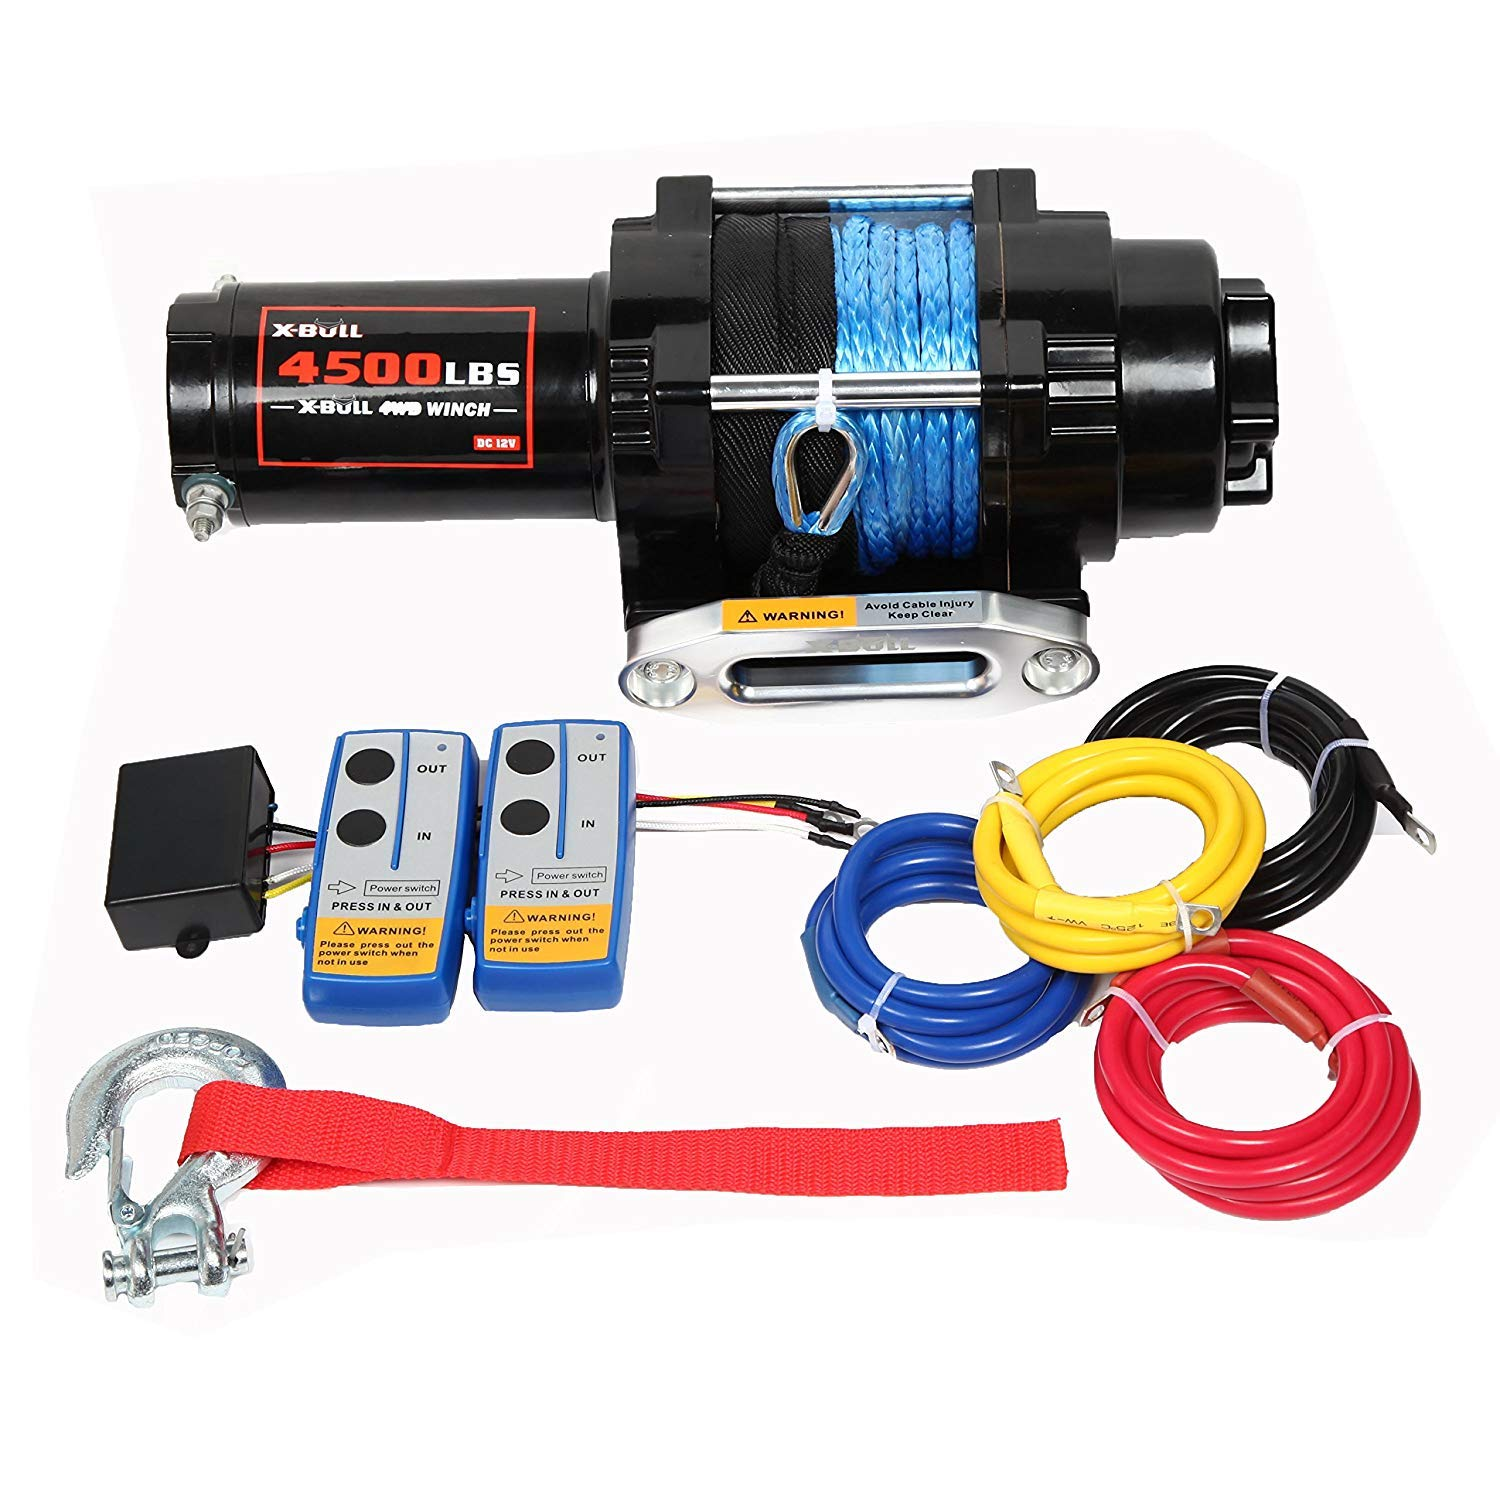 Roller Fairlead /& 12 remote 3,000lb//1360 kg with mount plate 12 VDC winch Superwinch 1331200 UT3000